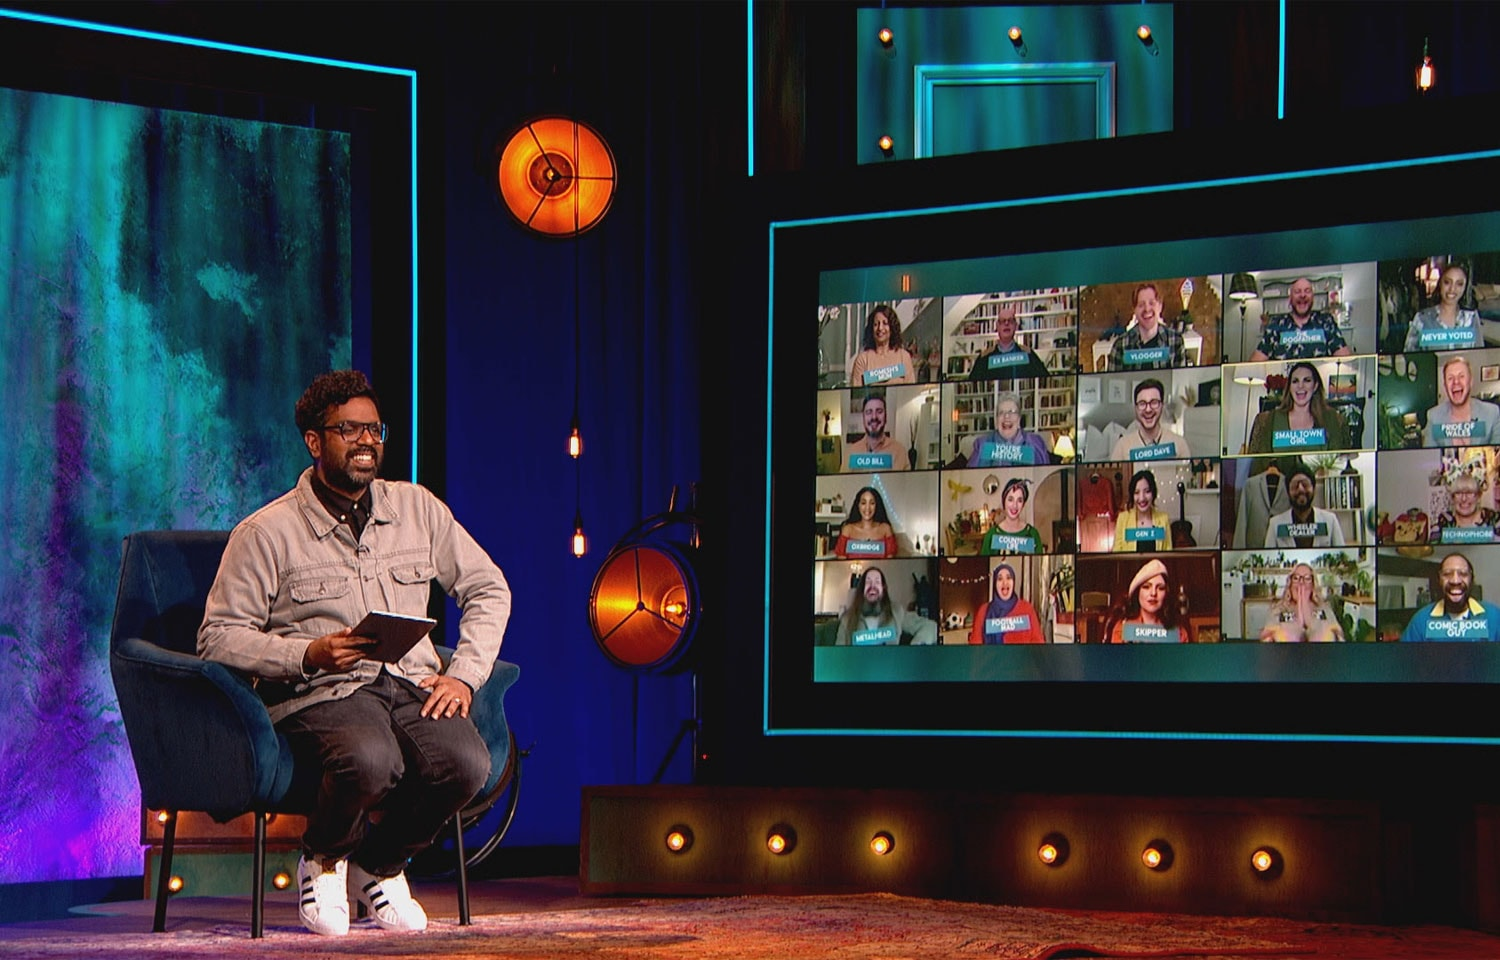 ROMESH RETURNS WITH THE RANGANATION ON BBC TWO